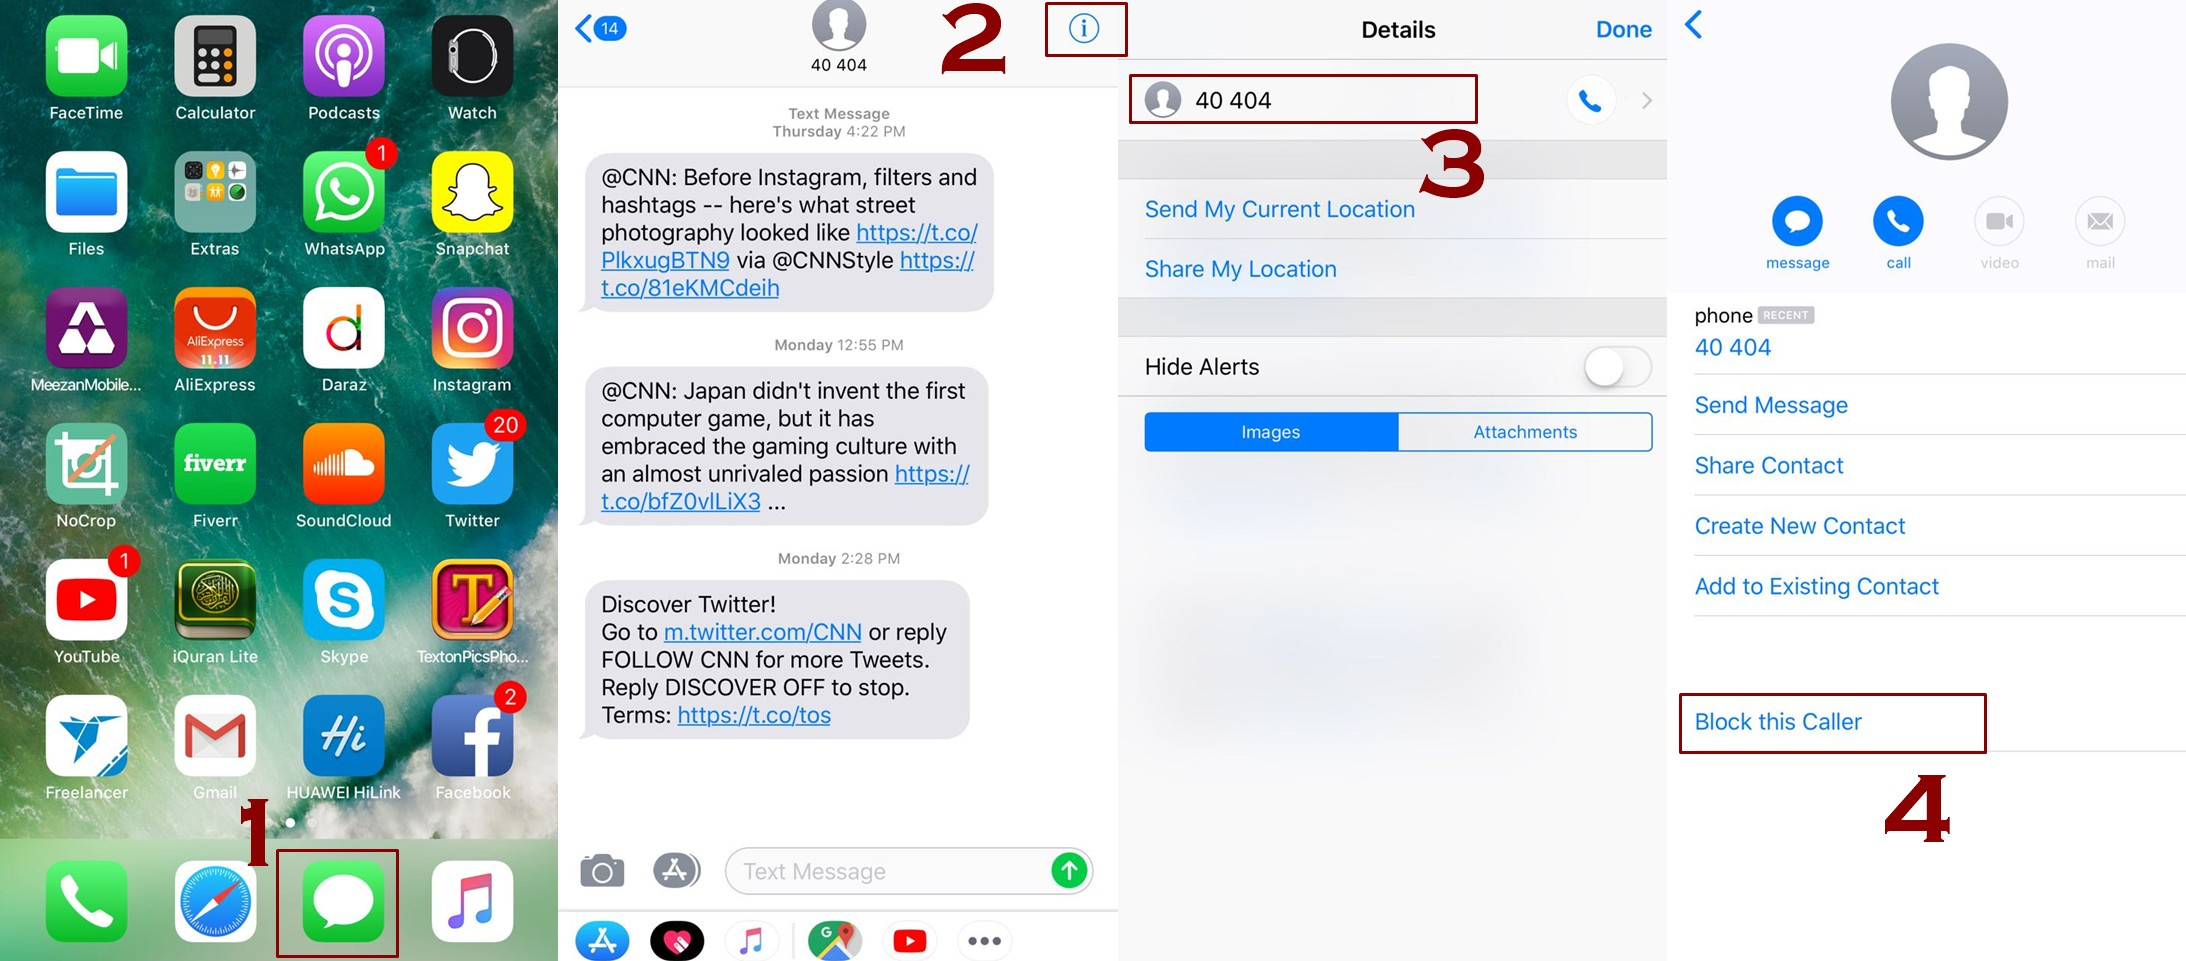 how to block contacts from messages iphone - How to Block a number on iPhone